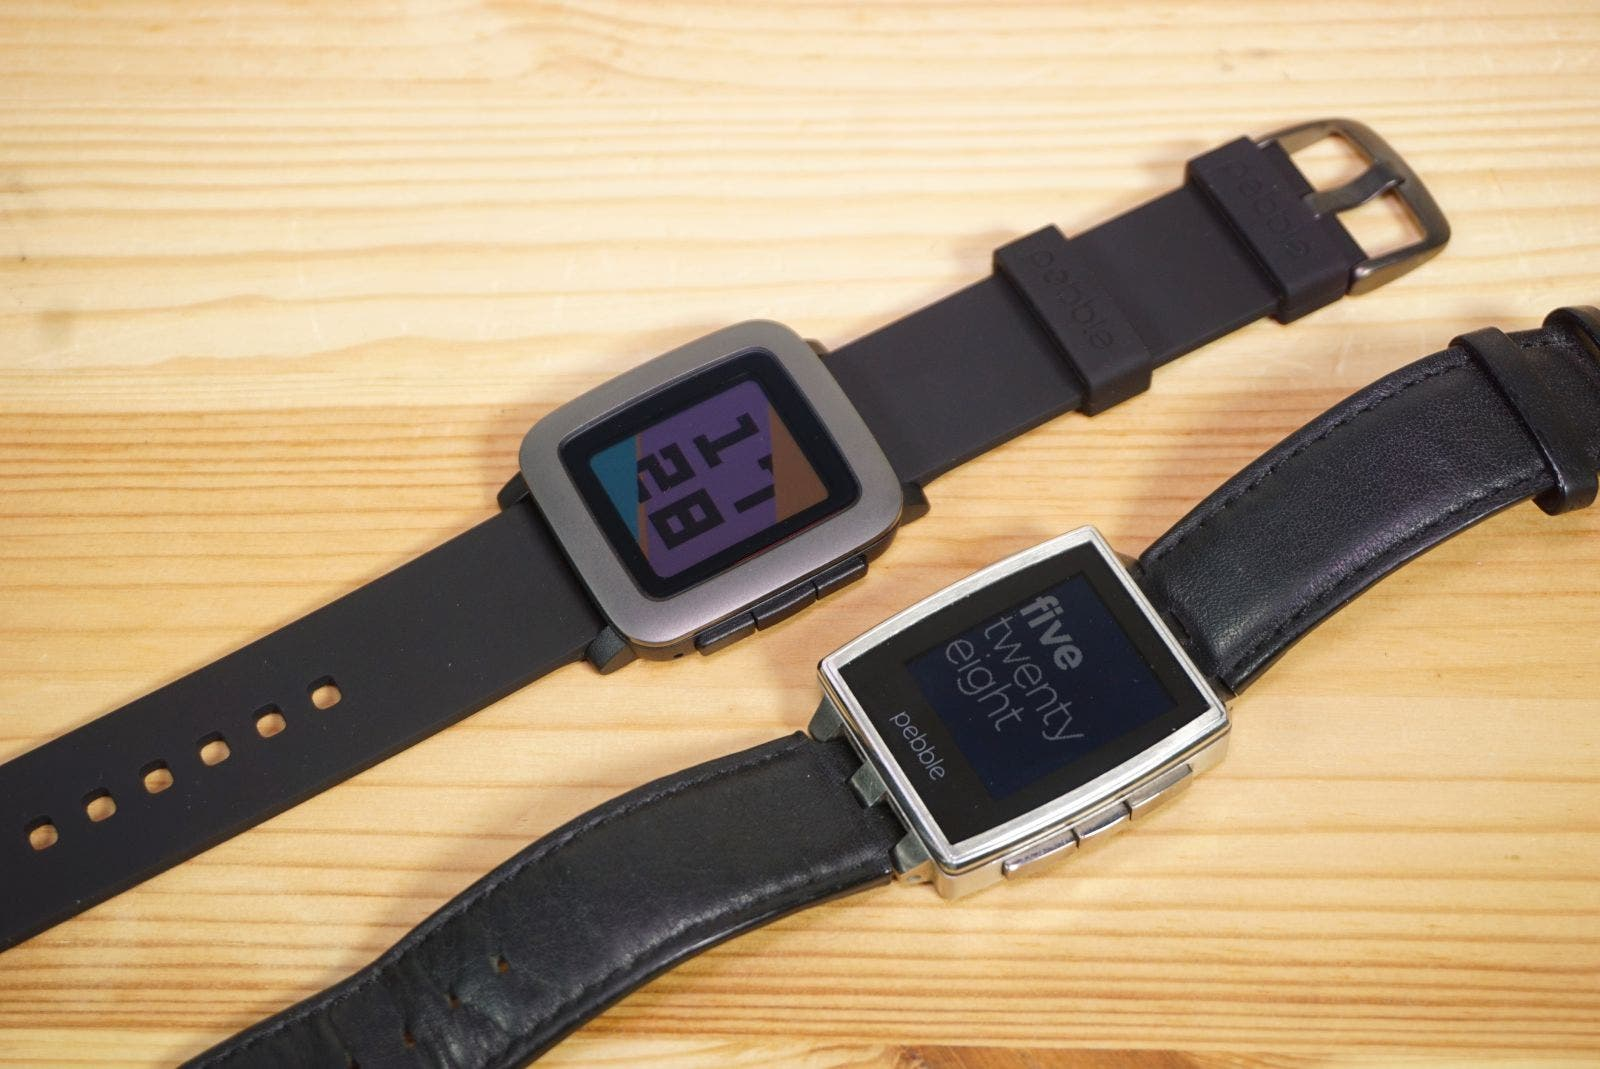 Pebble Time vs Pebble Steel Vergleich nebeneinander